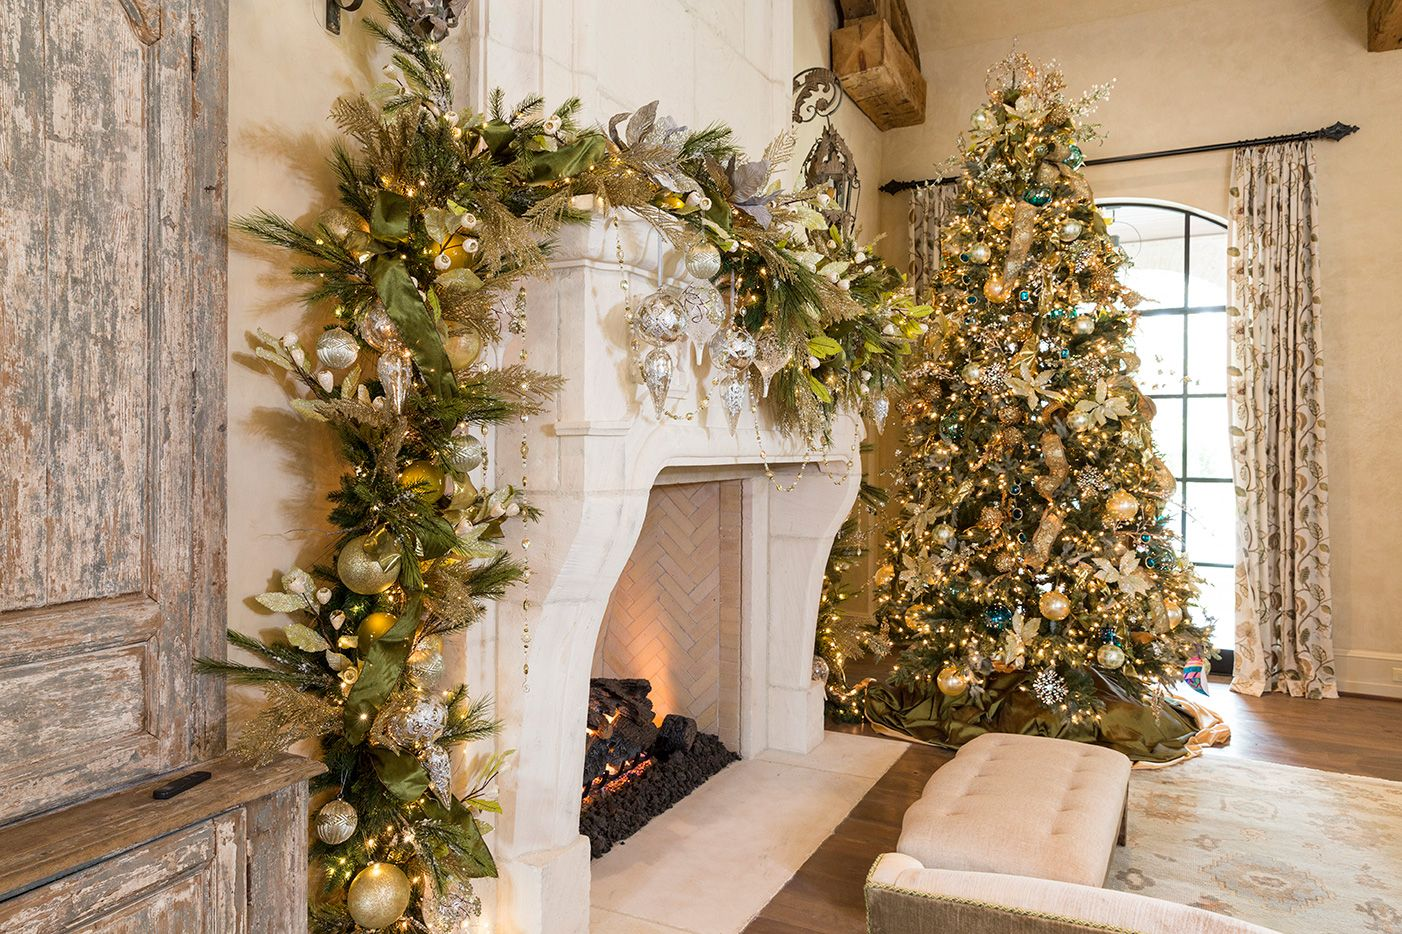 Mantle and Christmas Tree coordinating decorations